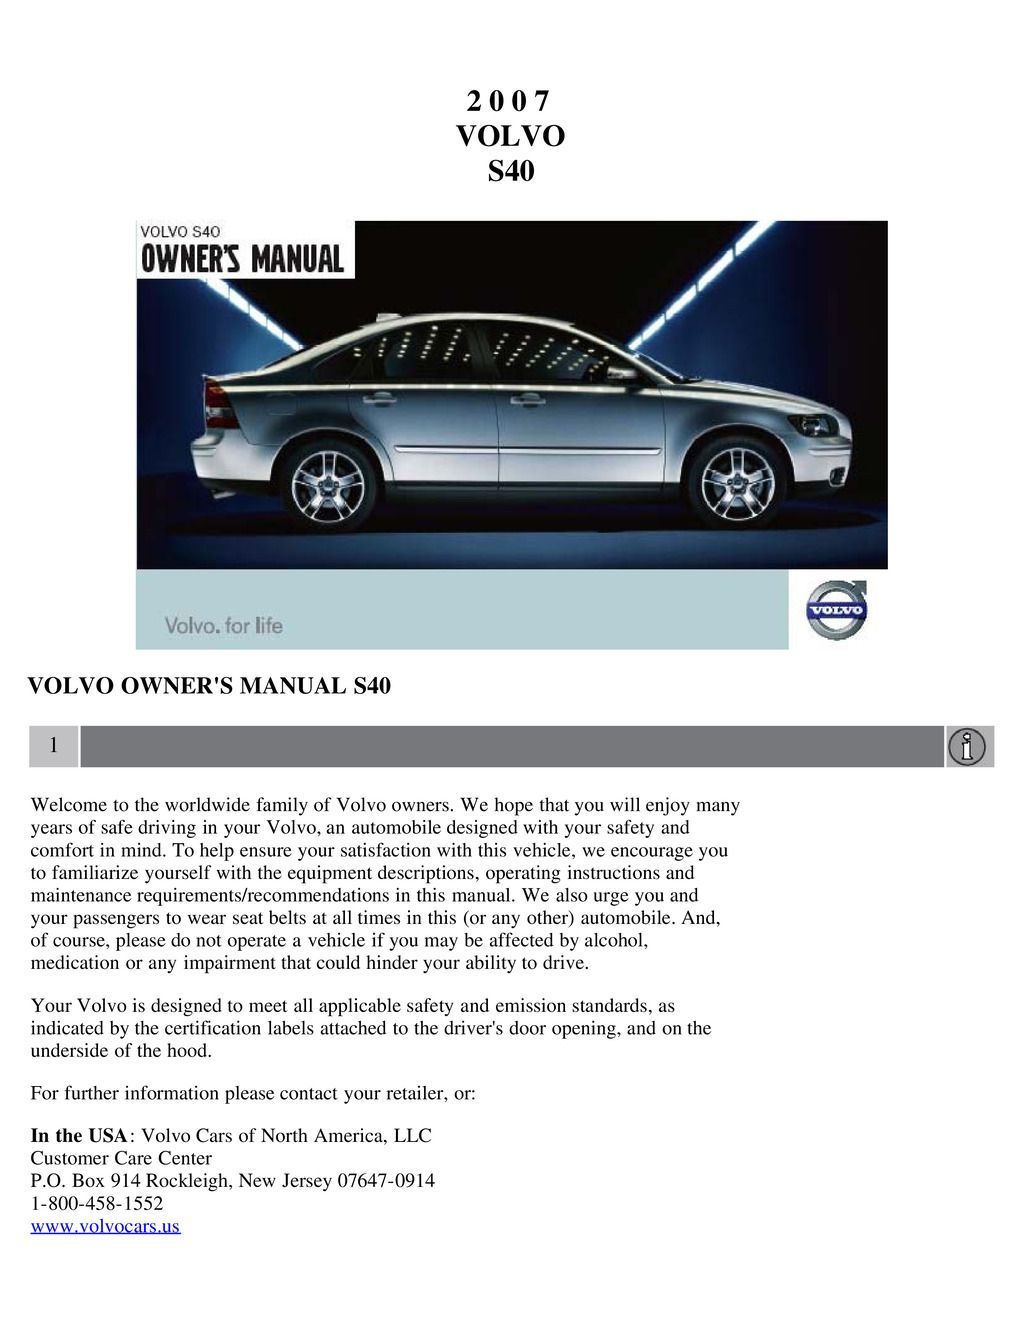 2007 Volvo S40 owners manual